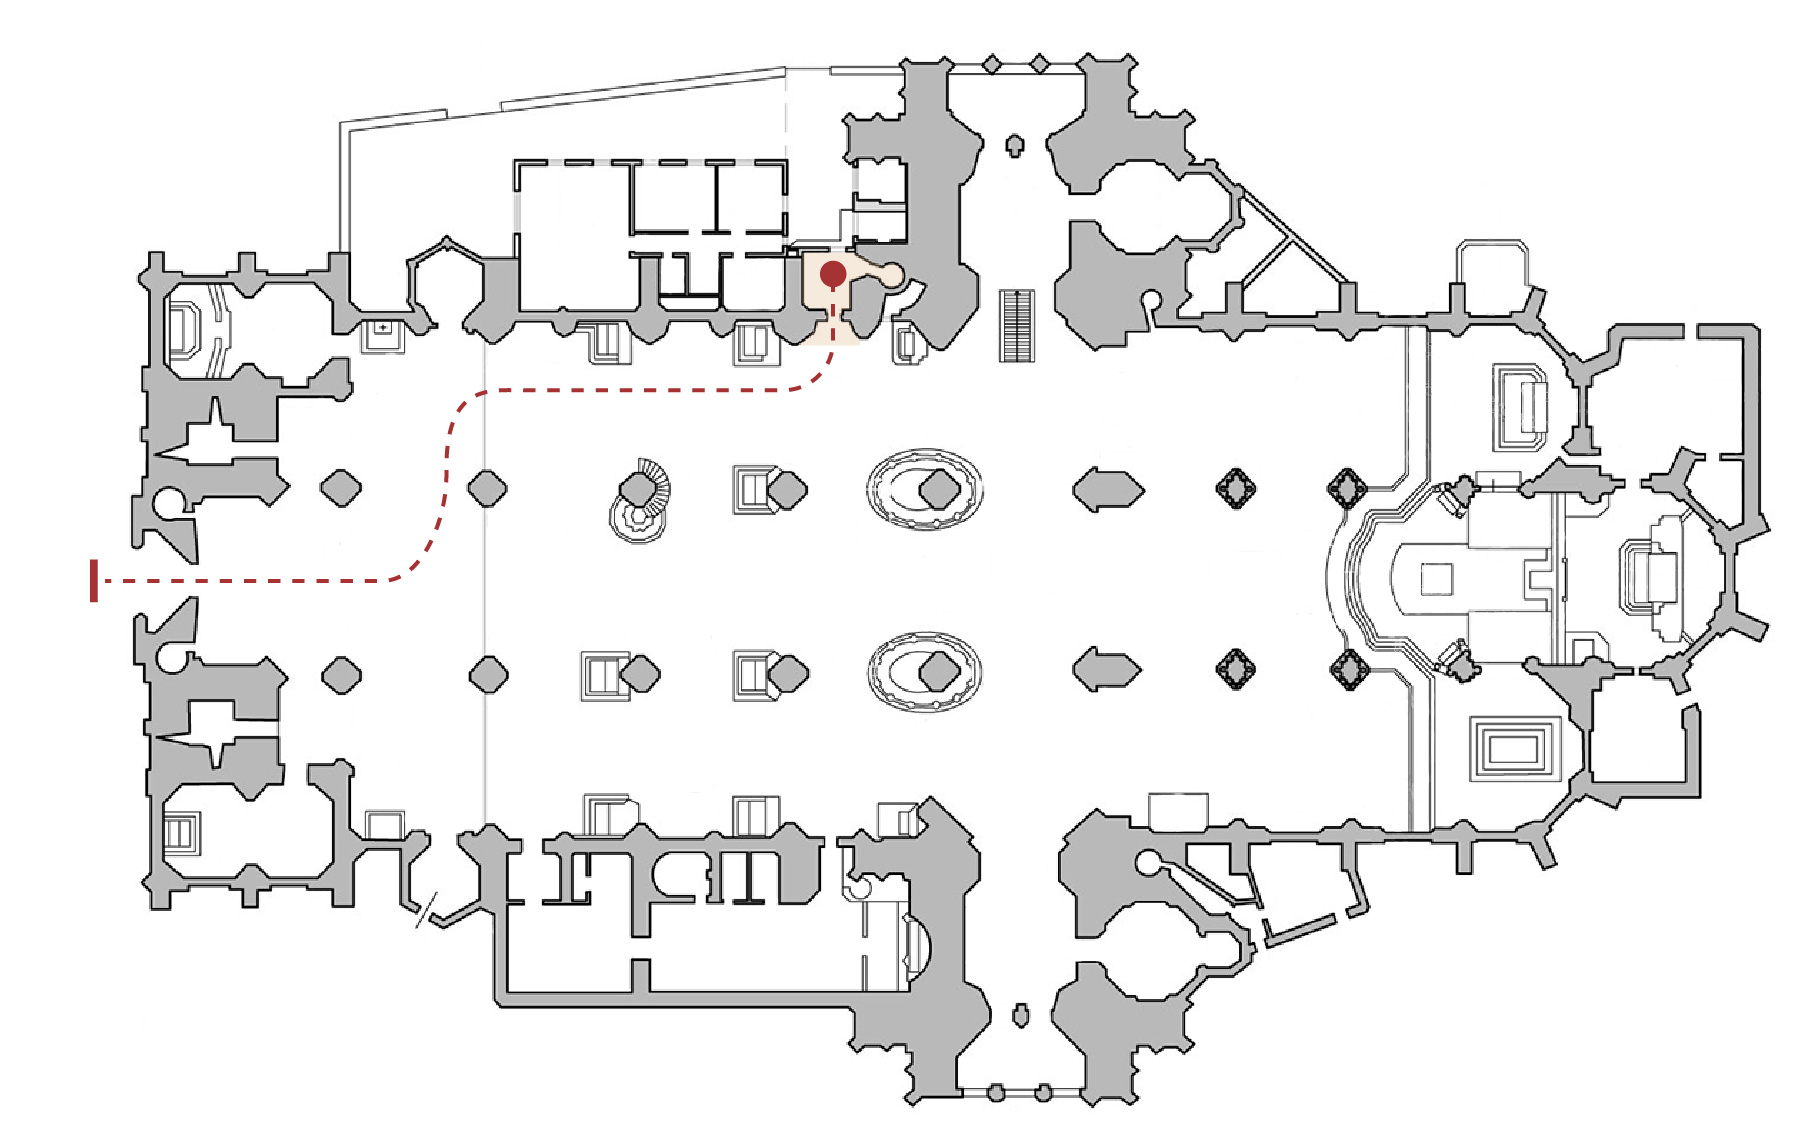 Floor plan of the North Tower